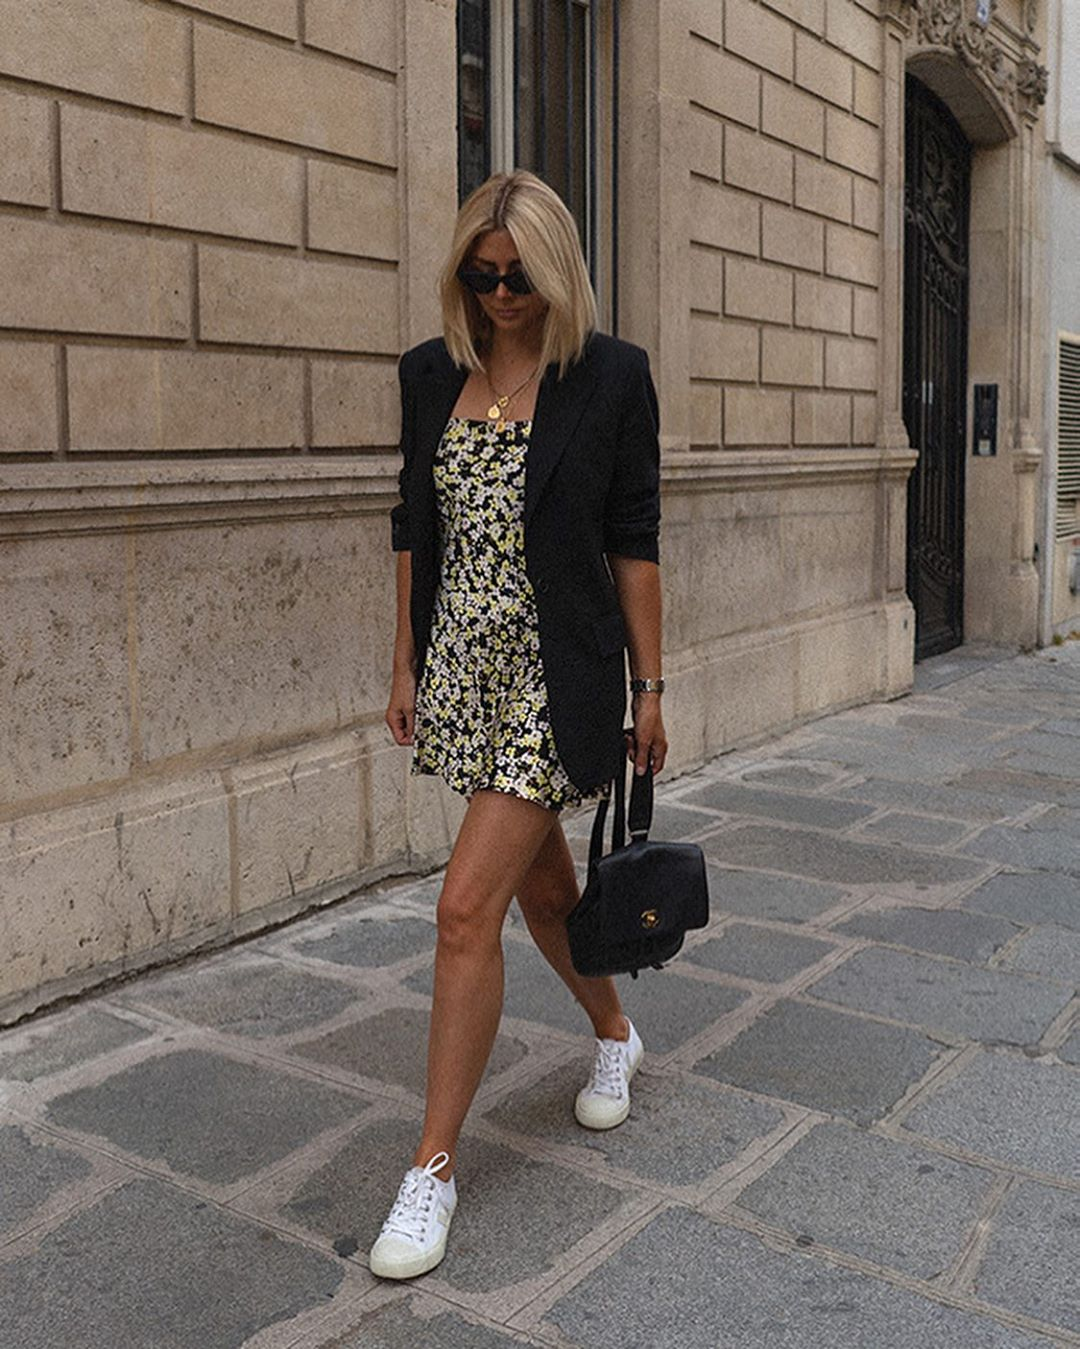 We Love This Casual Way to Style a Floral Dress